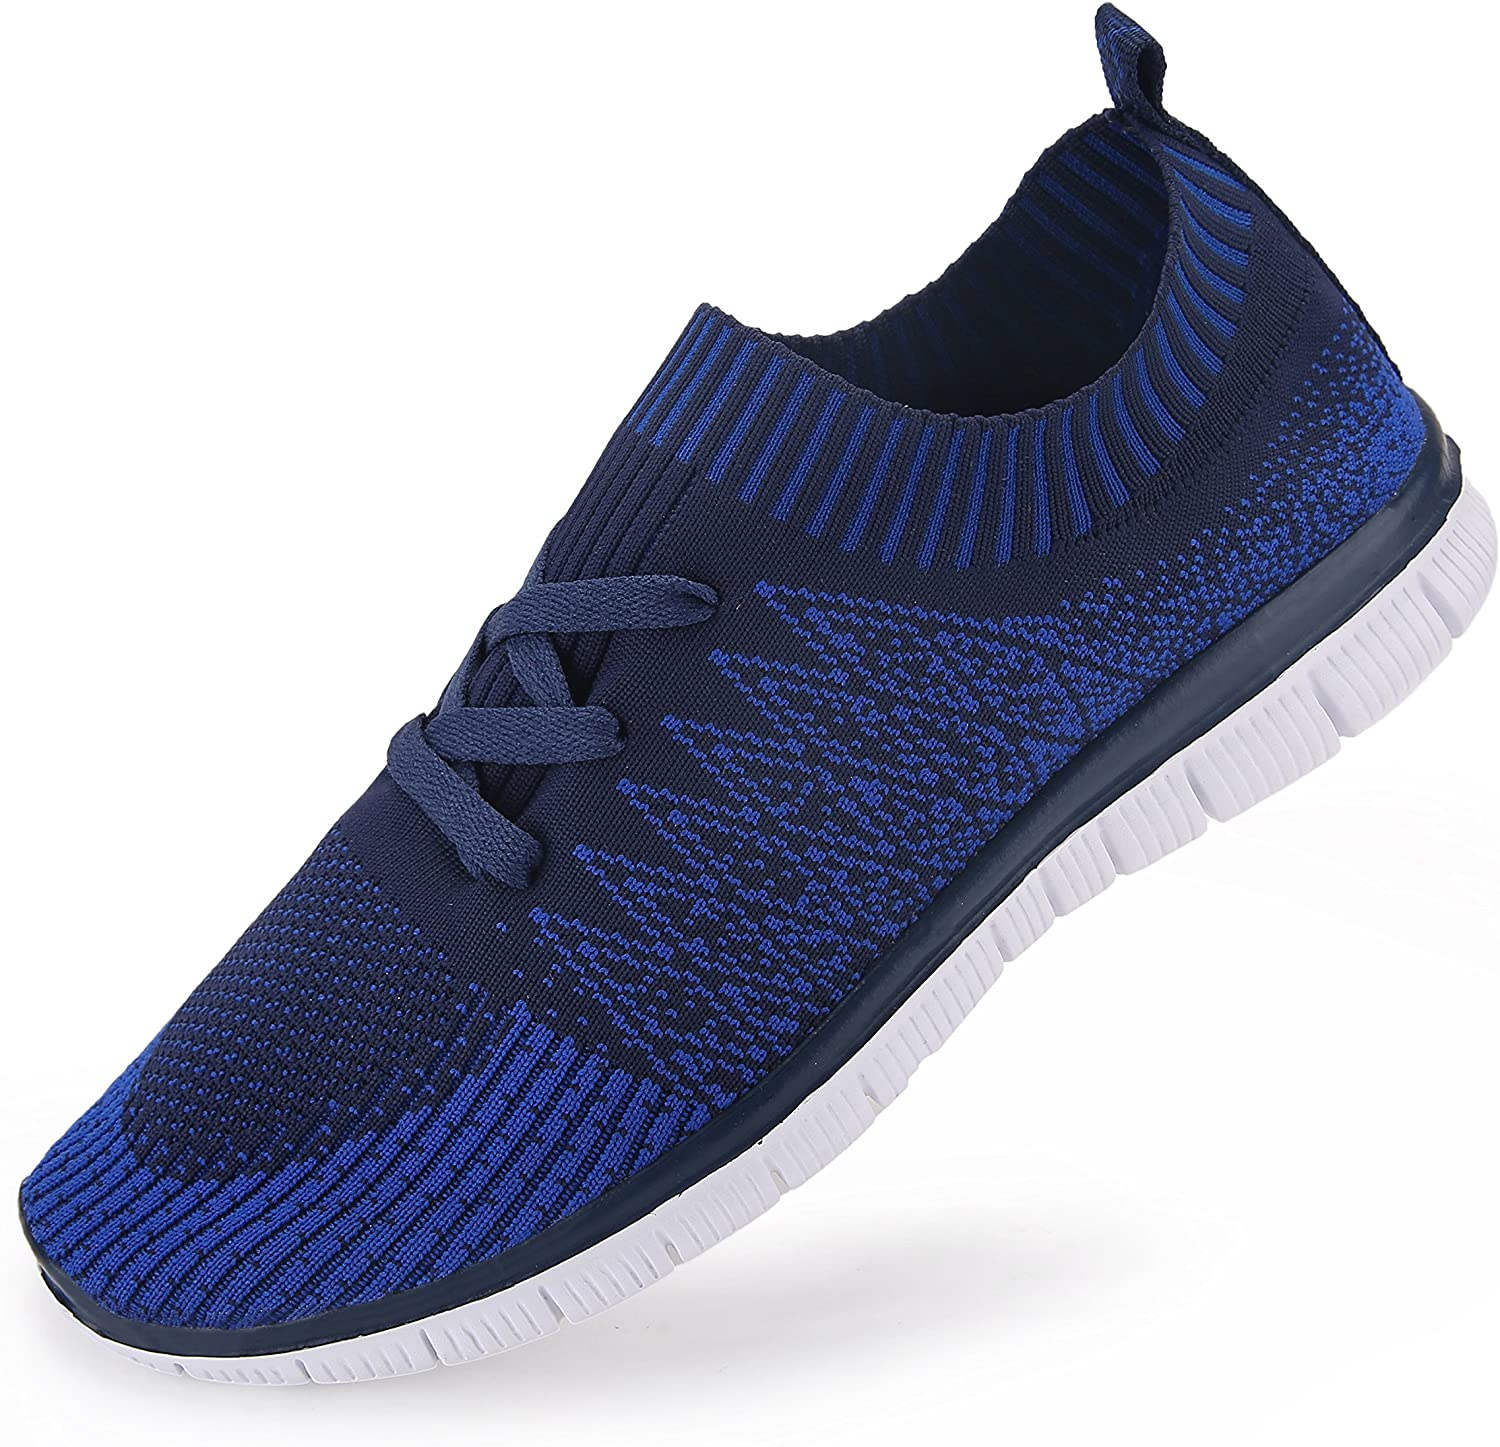 Vibdiv Men's shoes for Running Light Weight Lace-Up Flyknit Fashion Sneakers